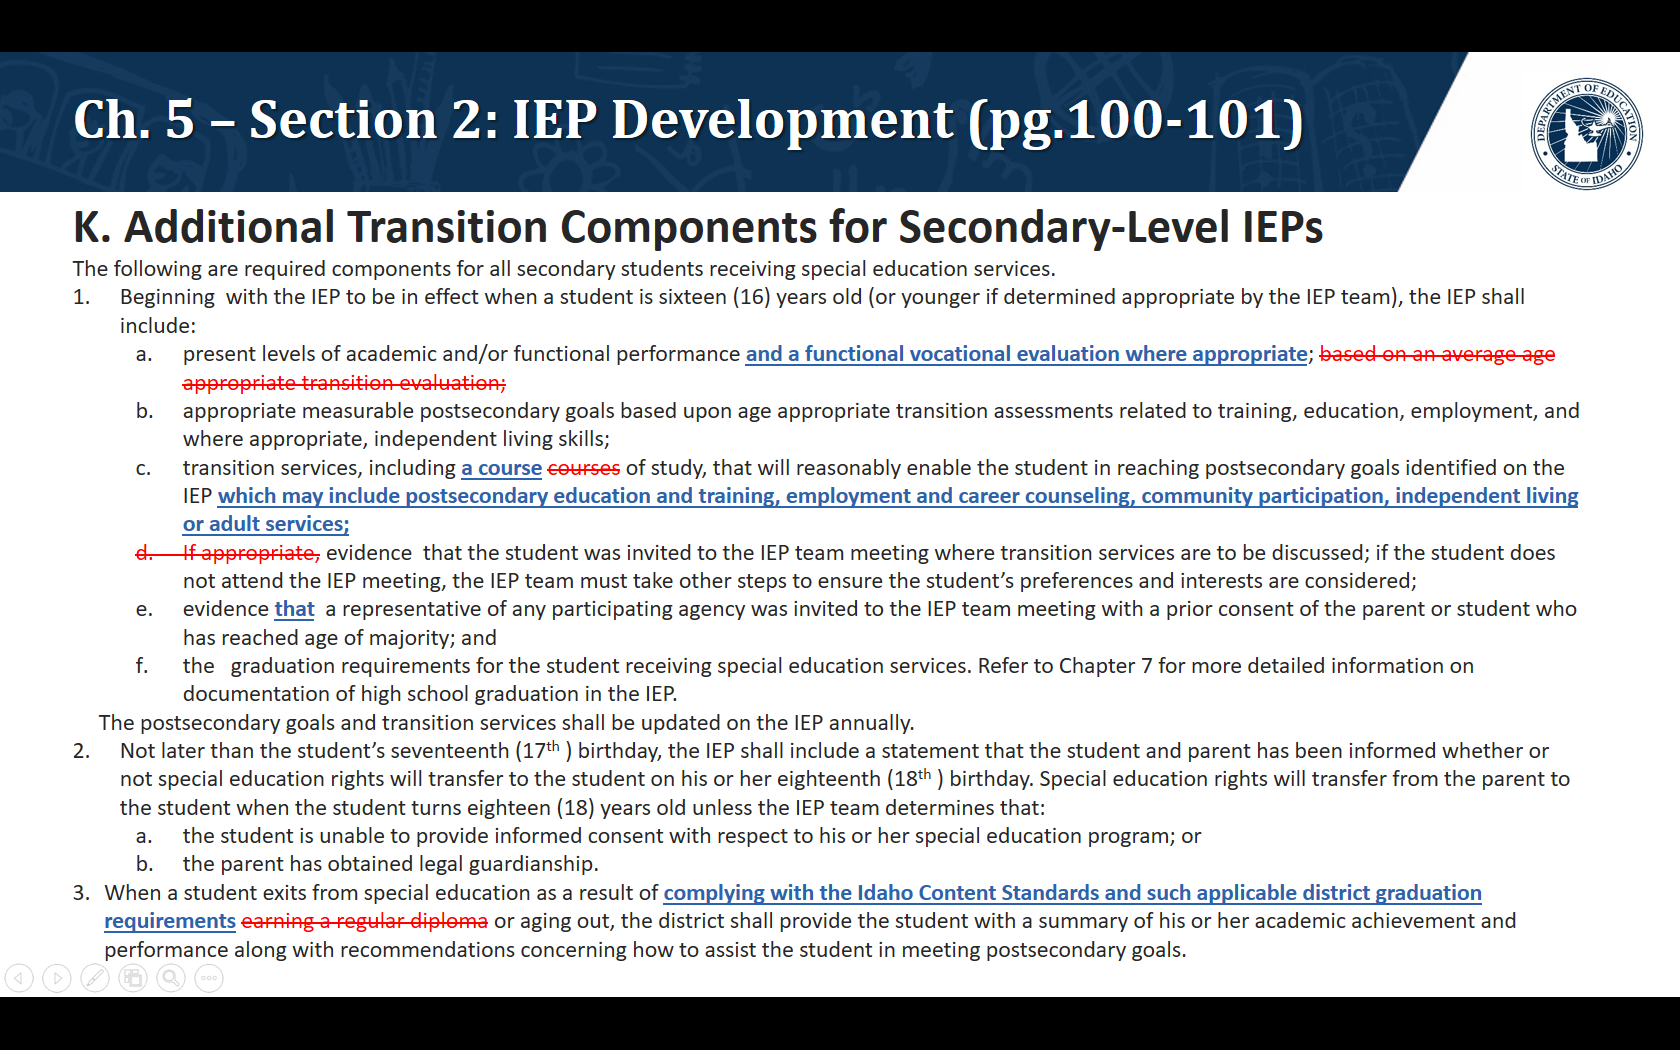 K. Additional Transition Components for Secondary-Level IEPs. The following are required components for all secondary students receiving special education services. Beginning with the IEP to be in effect when a student is sixteen (16) years old (or younger if determined appropriate by the IEP team), the IEP shall include:  present levels of academic and/or functional performance and a functional vocational evaluation where appropriate;  appropriate measurable postsecondary goals based upon age appropriate transition assessments related to training, education, employment, and where appropriate, independent living skills; transition services, including a course of study, that will reasonably enable the student in reaching postsecondary goals identified on the IEP which may include postsecondary education and training, employment and career counseling, community participation, independent living or adult services; evidence that the student was invited to the IEP team meeting where transition services are to be discussed; if the student does not attend the IEP meeting, the IEP team must take other steps to ensure the student's preferences and interests are considered; evidence that  a representative of any participating agency was invited to the IEP team meeting with a prior consent of the parent or student who has reached age of majority; and the graduation requirements for the student receiving special education services. Refer to Chapter 7 for more detailed information on documentation of high school graduation in the IEP.      The postsecondary goals and transition services shall be updated on the IEP annually. Not later than the student's seventeenth (17th ) birthday, the IEP shall include a statement that the student and parent has been informed whether or not special education rights will transfer to the student on his or her eighteenth (18th ) birthday. Special education rights will transfer from the parent to the student when the student turns eighteen (18) yea